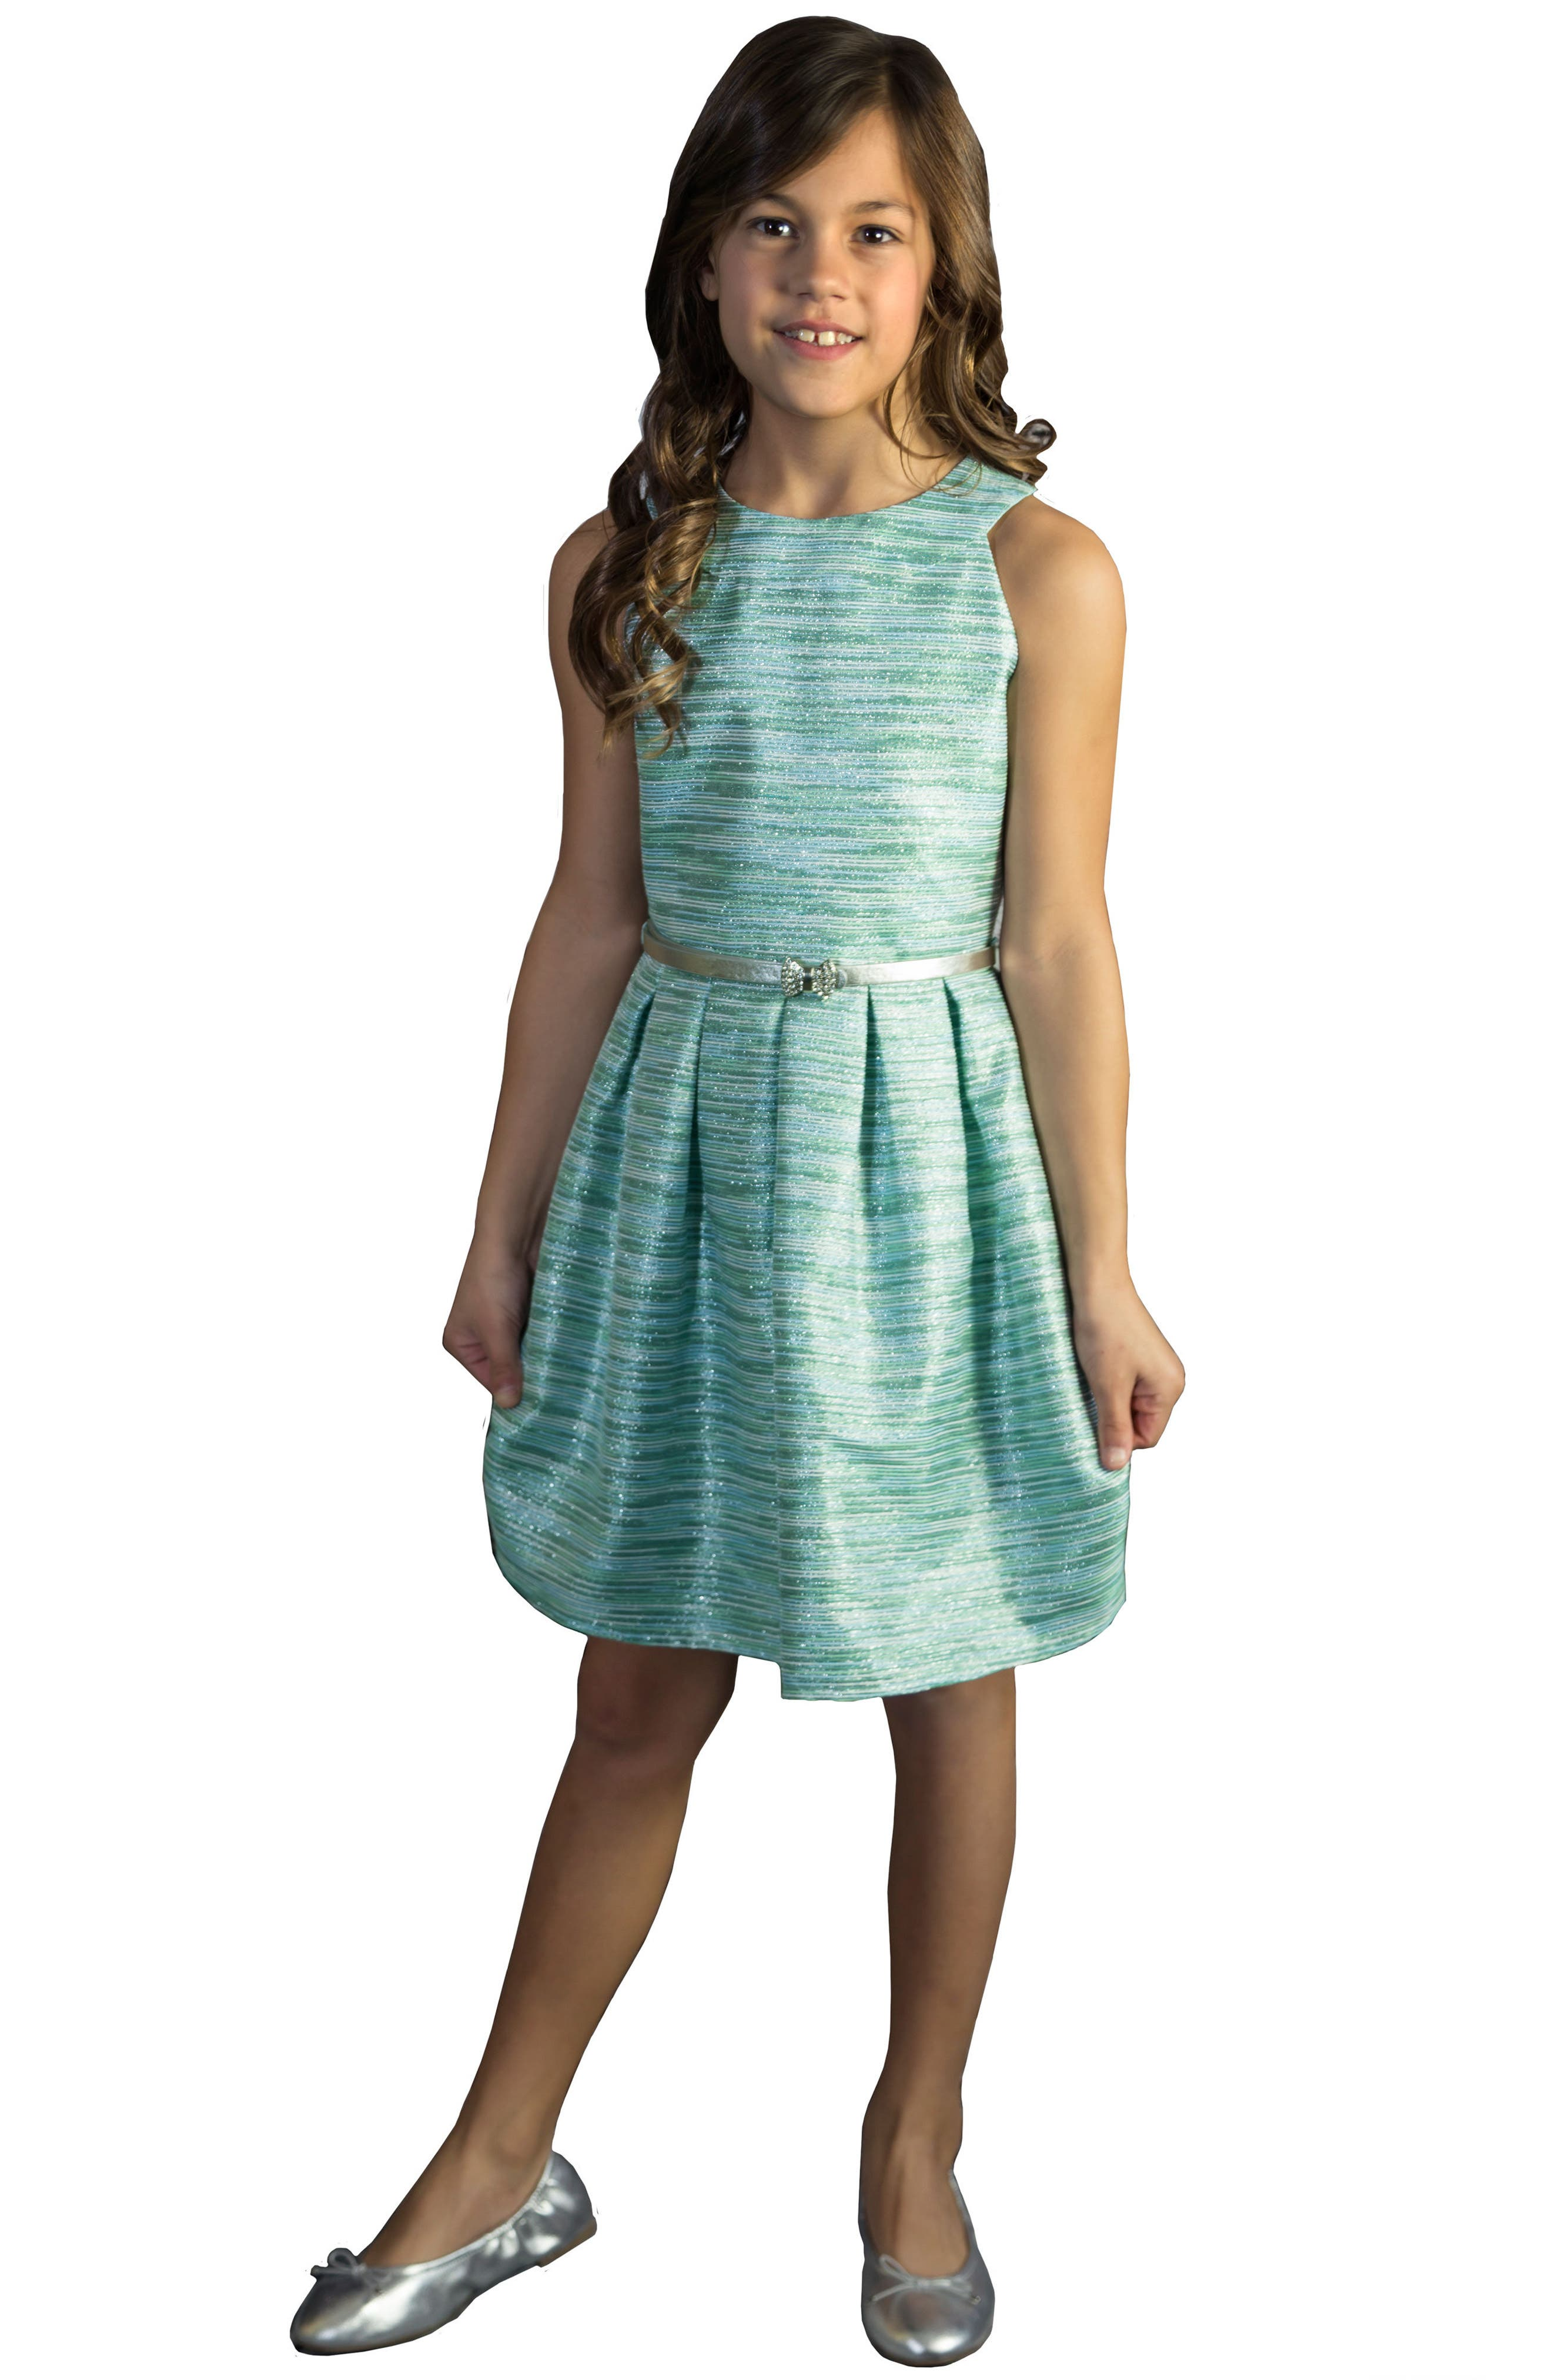 Main Image - BLUSH by Us Angels Metallic Party Dress (Big Girls)